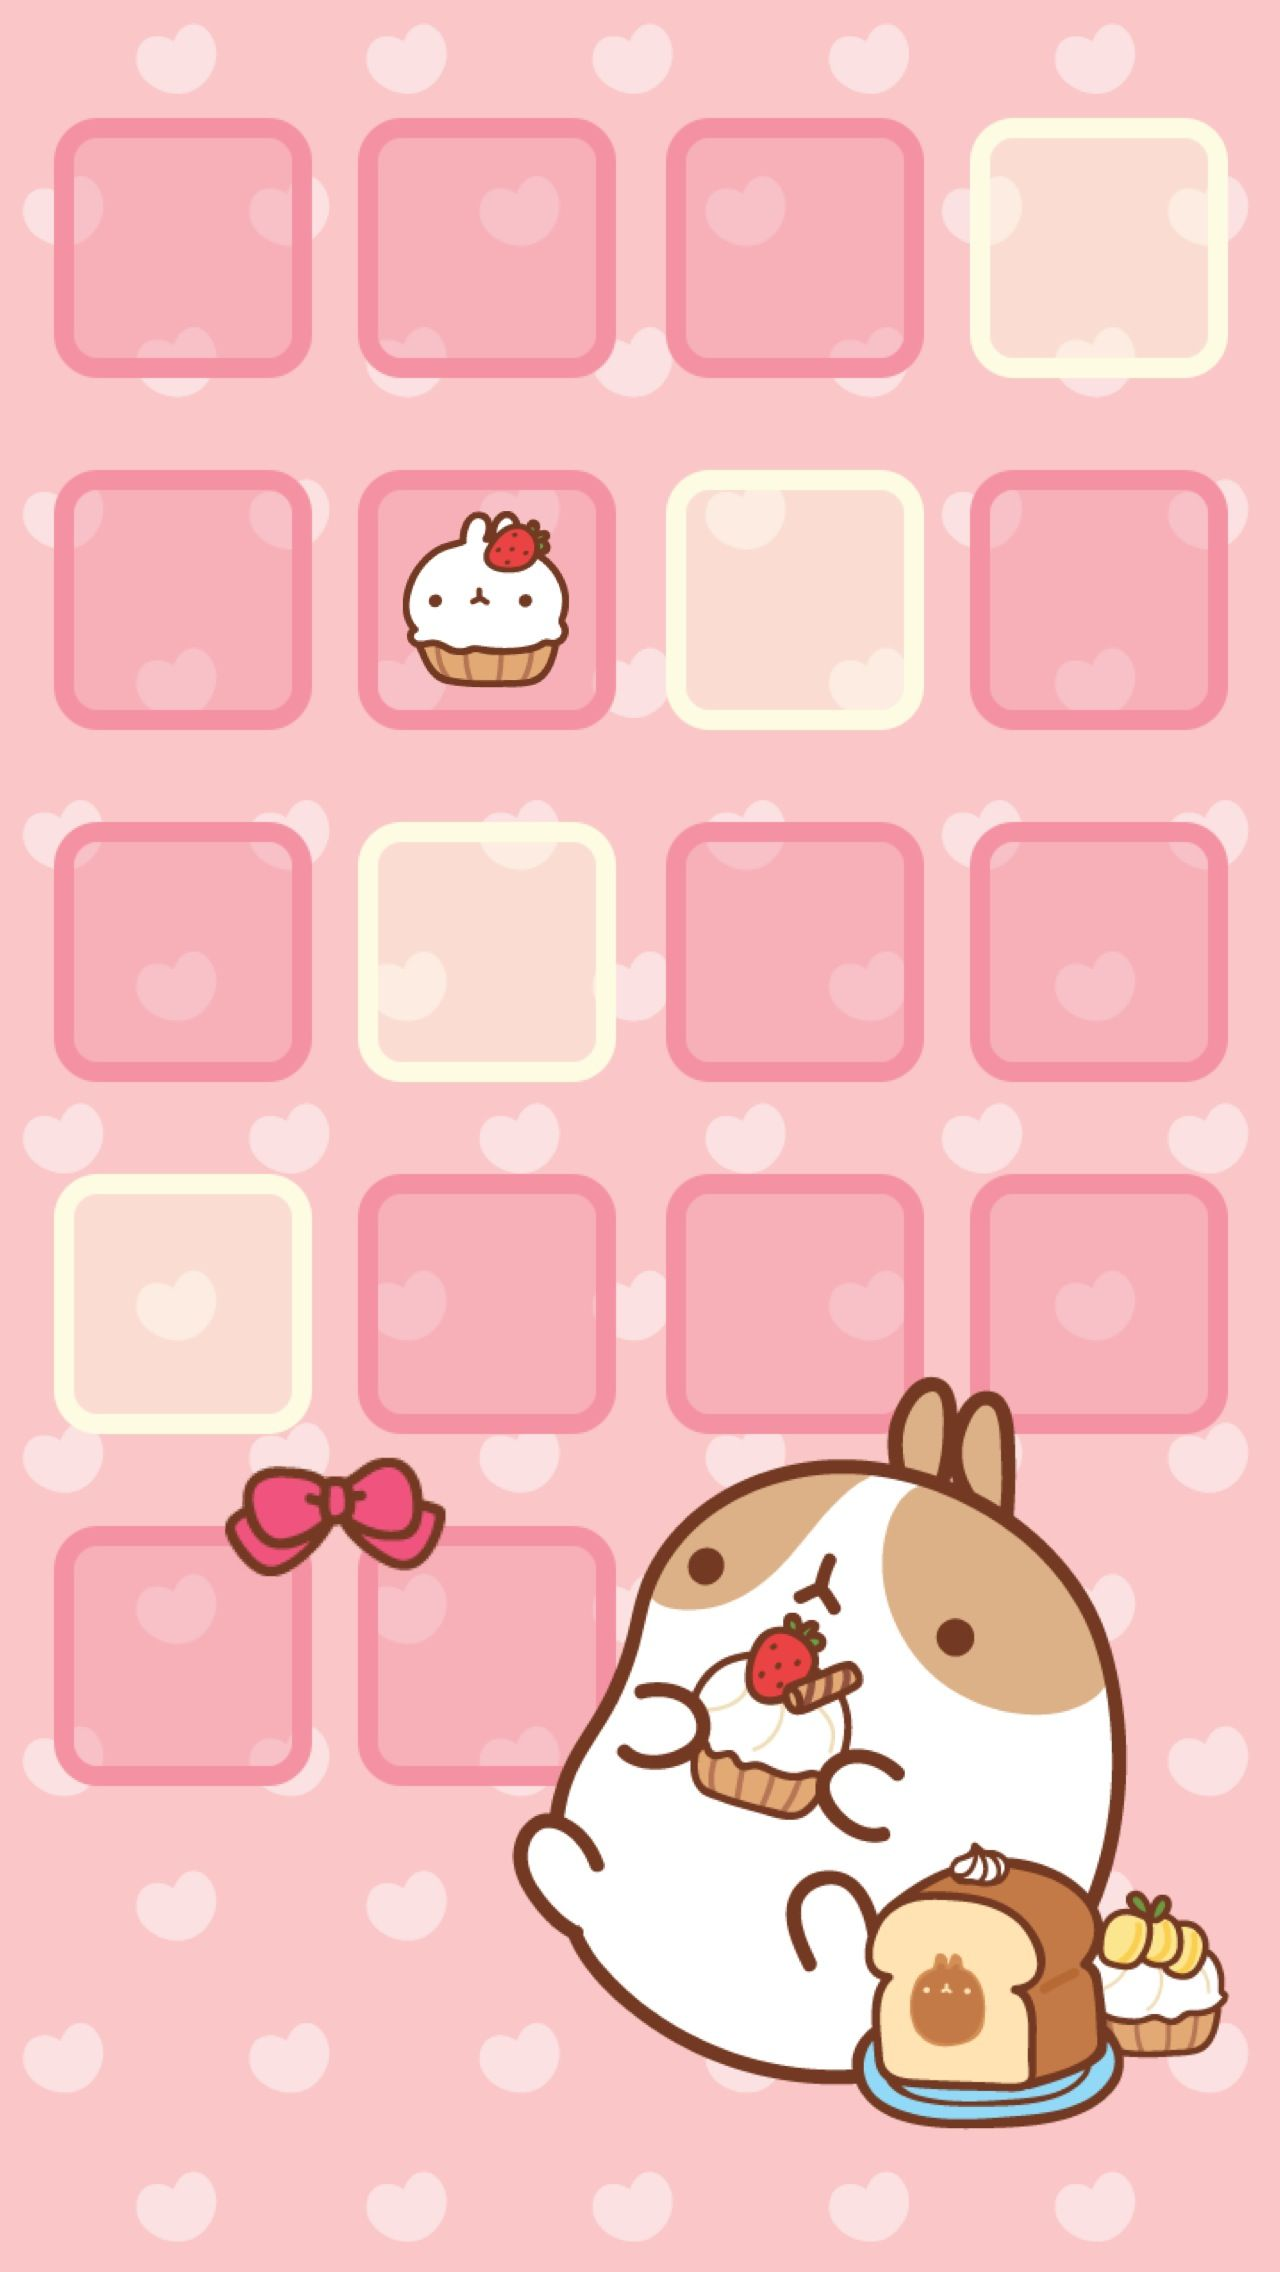 Iphone clipart pink iphone. Cute wallpapers for